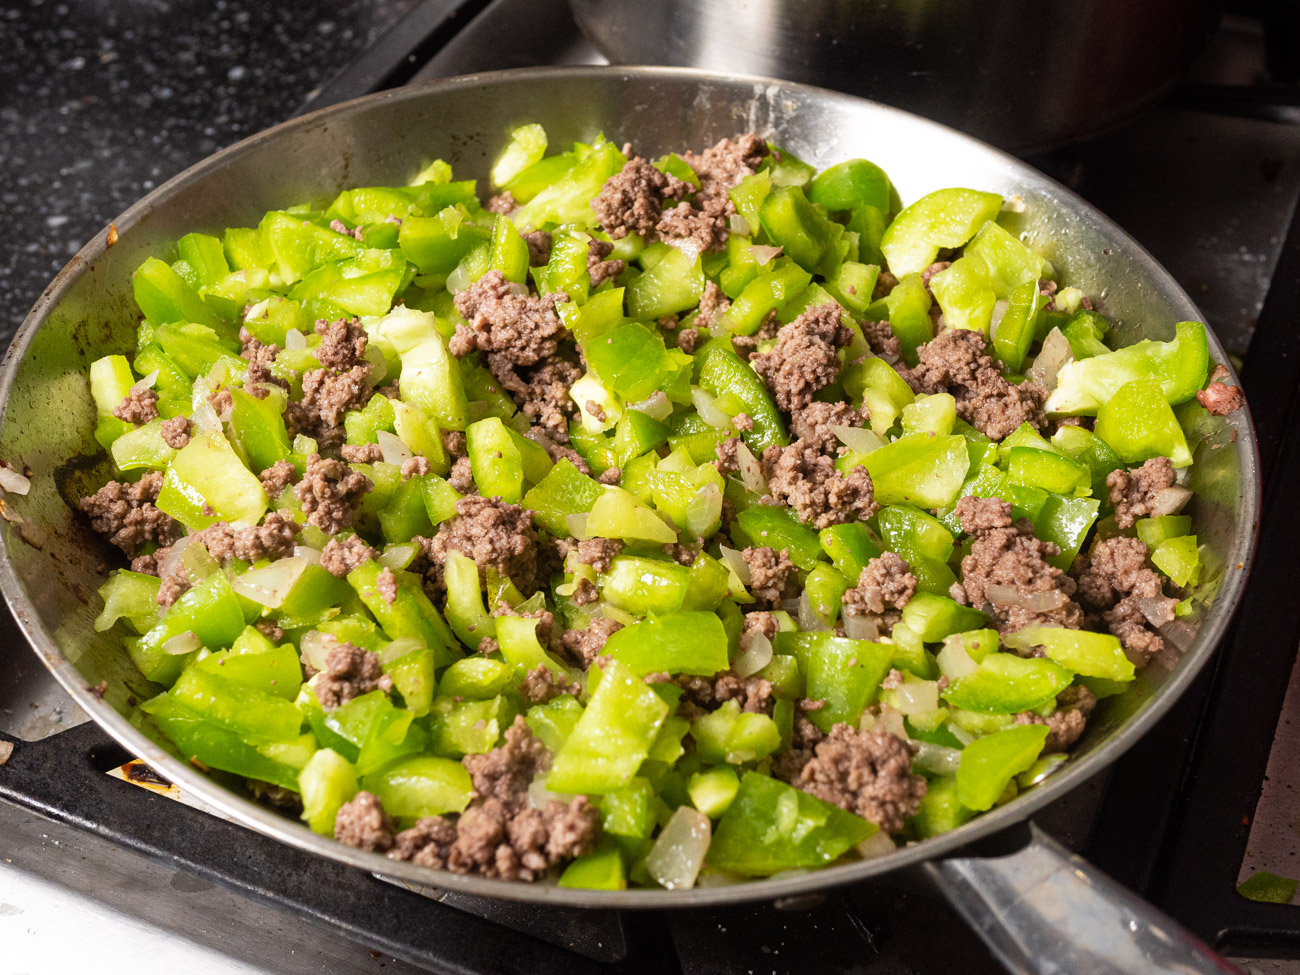 Add bell peppers to the skillet and sauté until they soften (about 3 minutes).